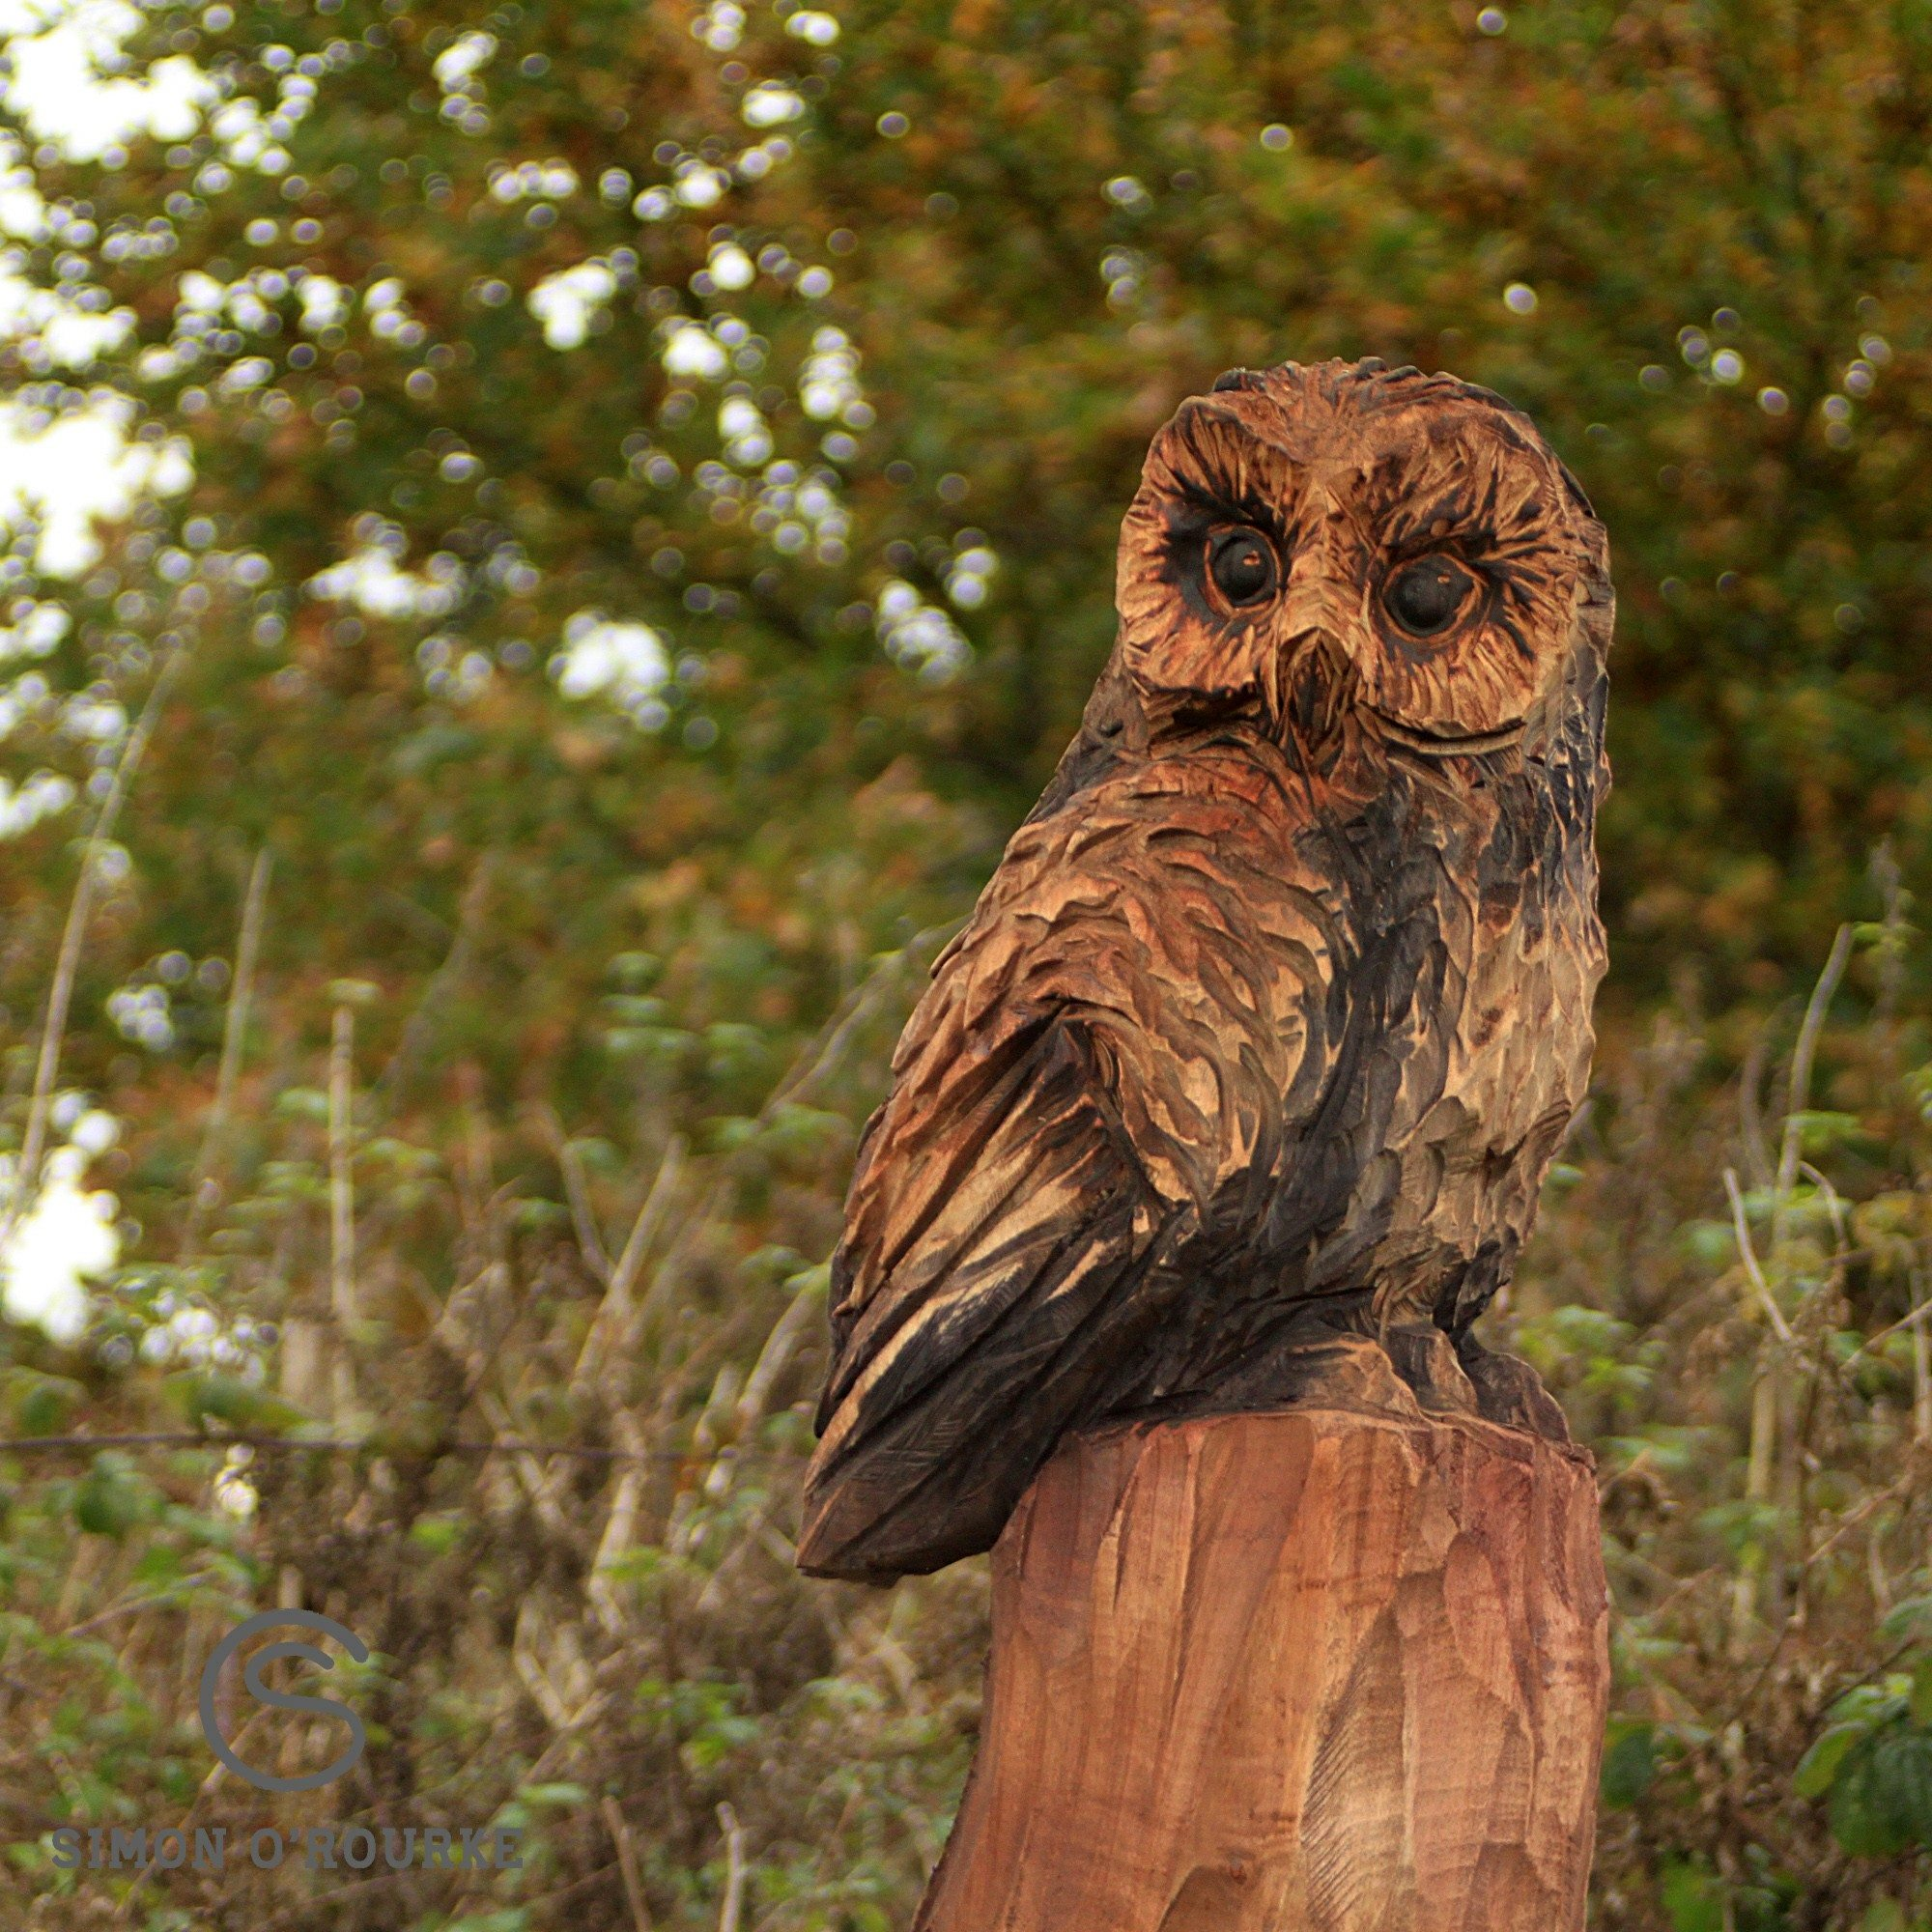 Wooden sculpture of an owl on top of a tree trunk. The sculpture is part of the meadow park sculpture trail by Simon O'Rourke